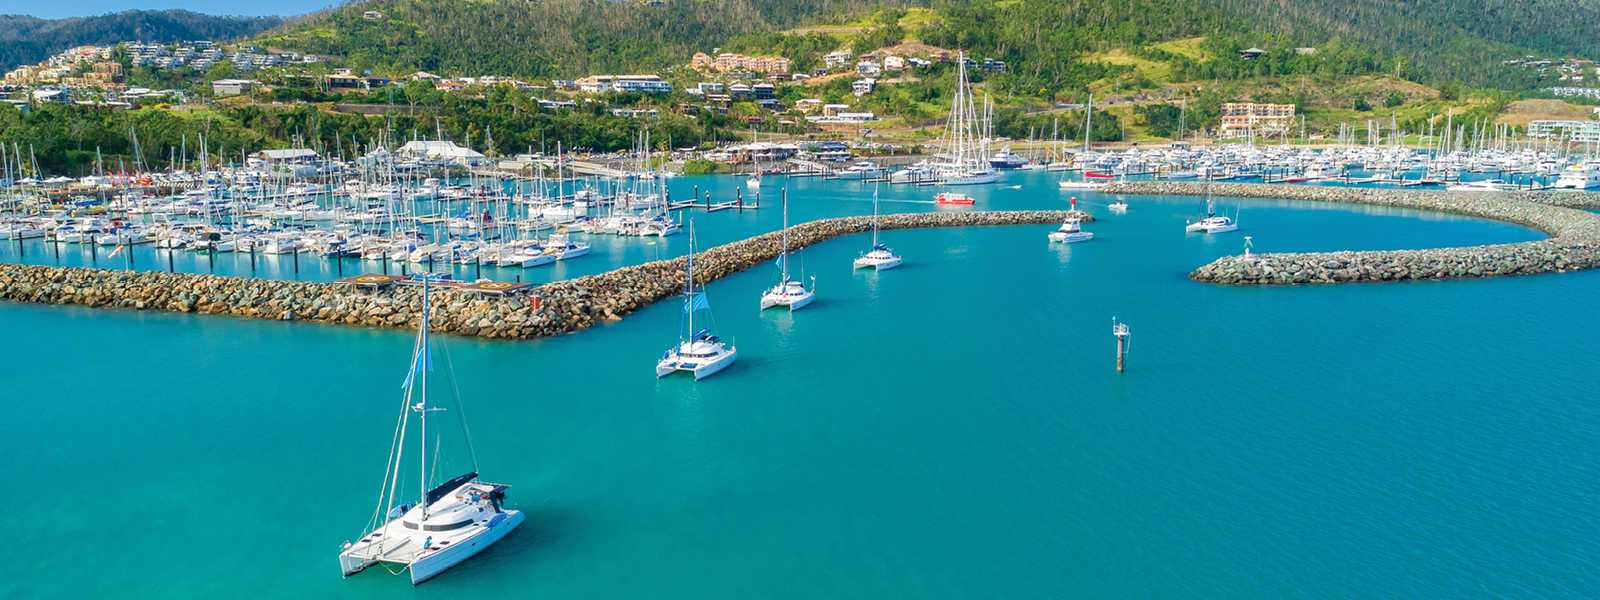 Coral Sea Marina Resort award winning facilities